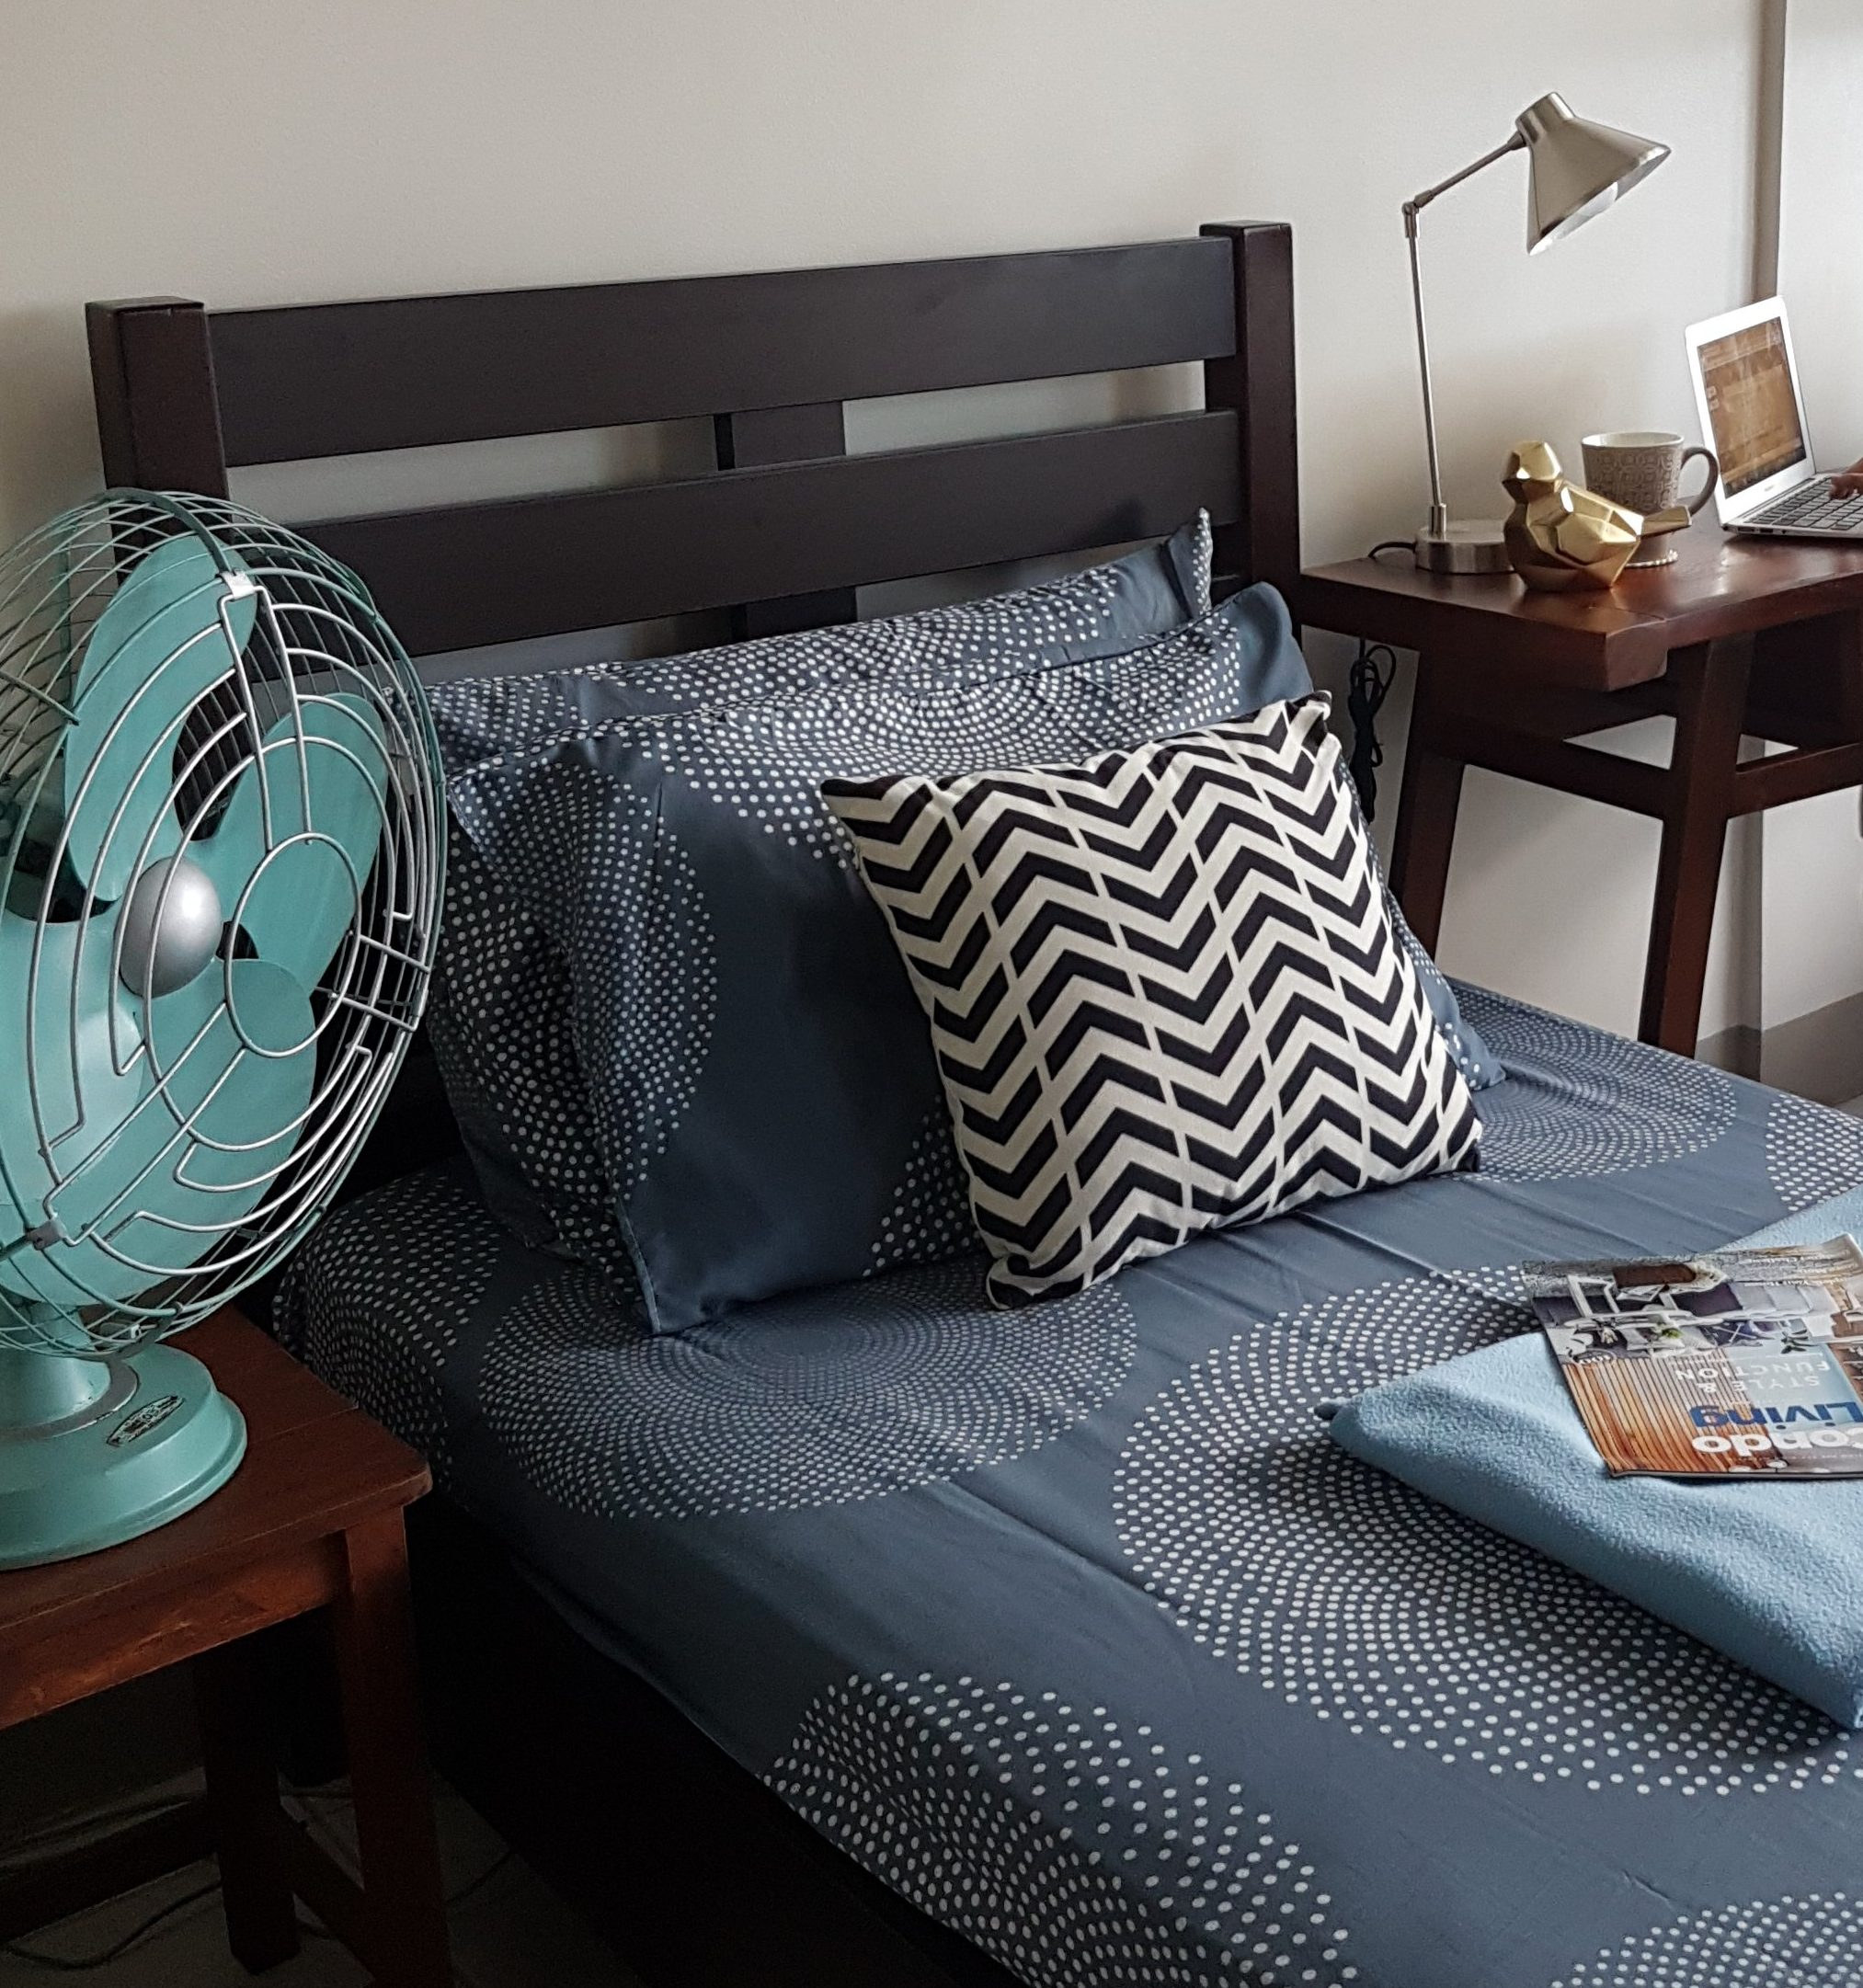 chevron print pillow on blue bed with vintage aqua electric fan